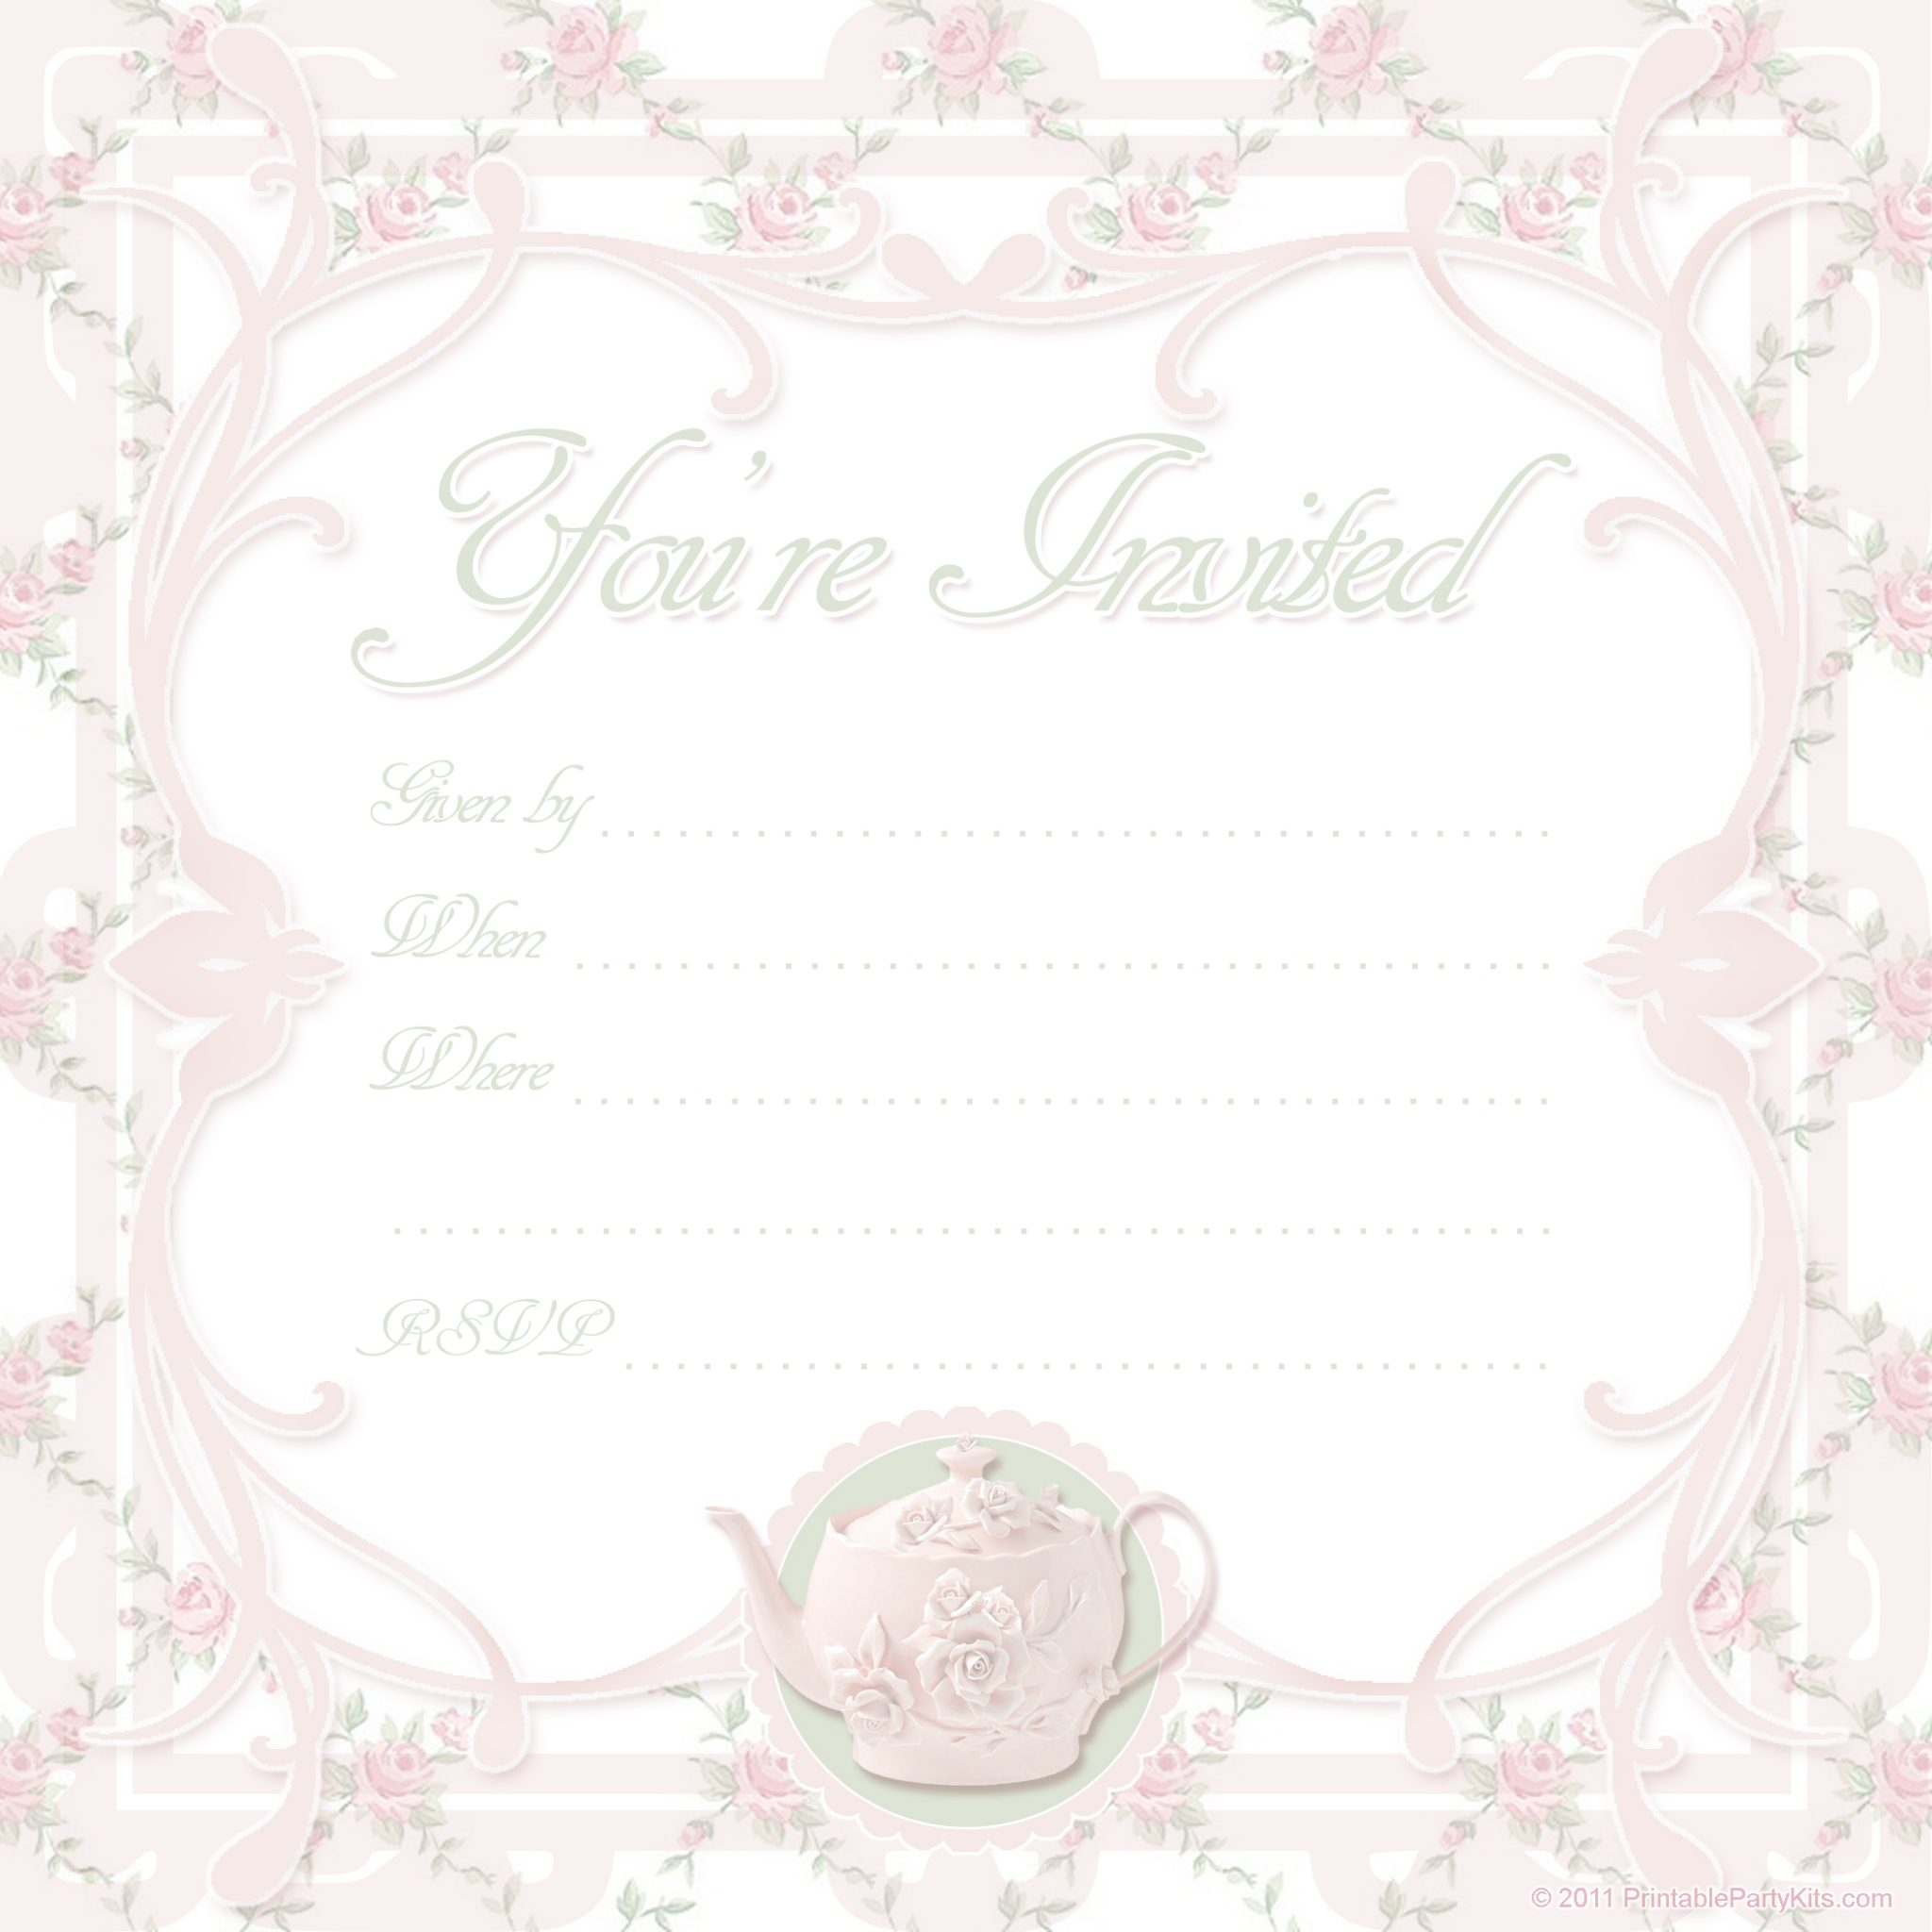 Free Printable Tea Party Invite Template | Printable Party Kits